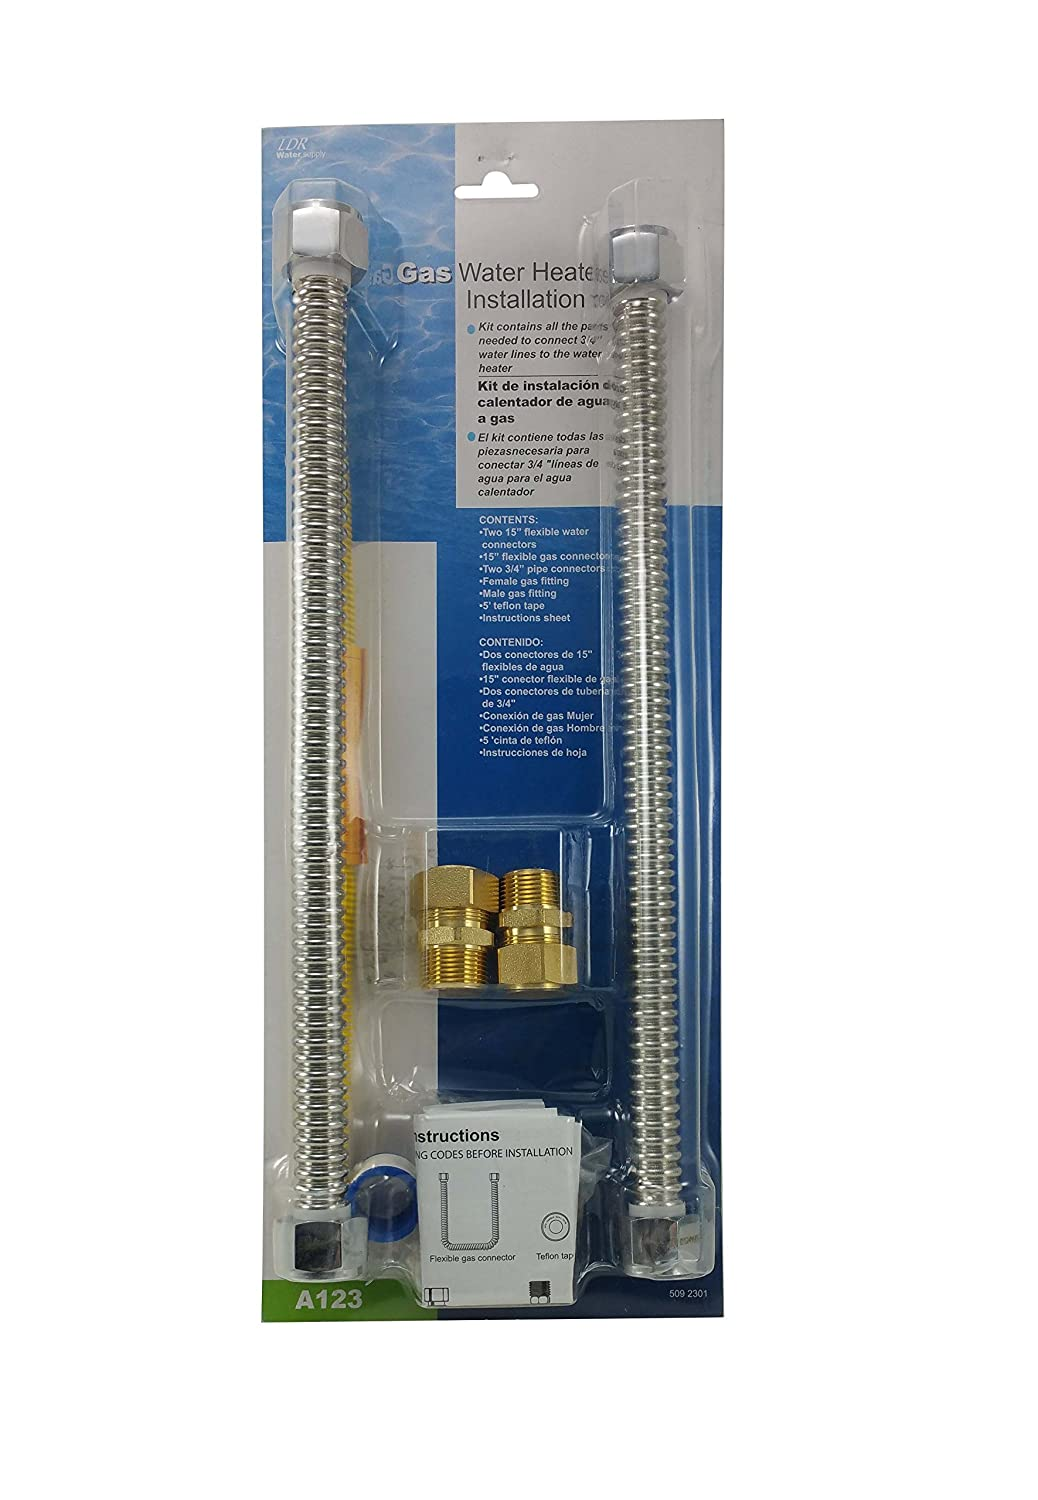 LDR 509 2301 Complete Gas Water Heater Installation Set For ¾ Threaded or Copper Pipe Water Lines - - Amazon.com